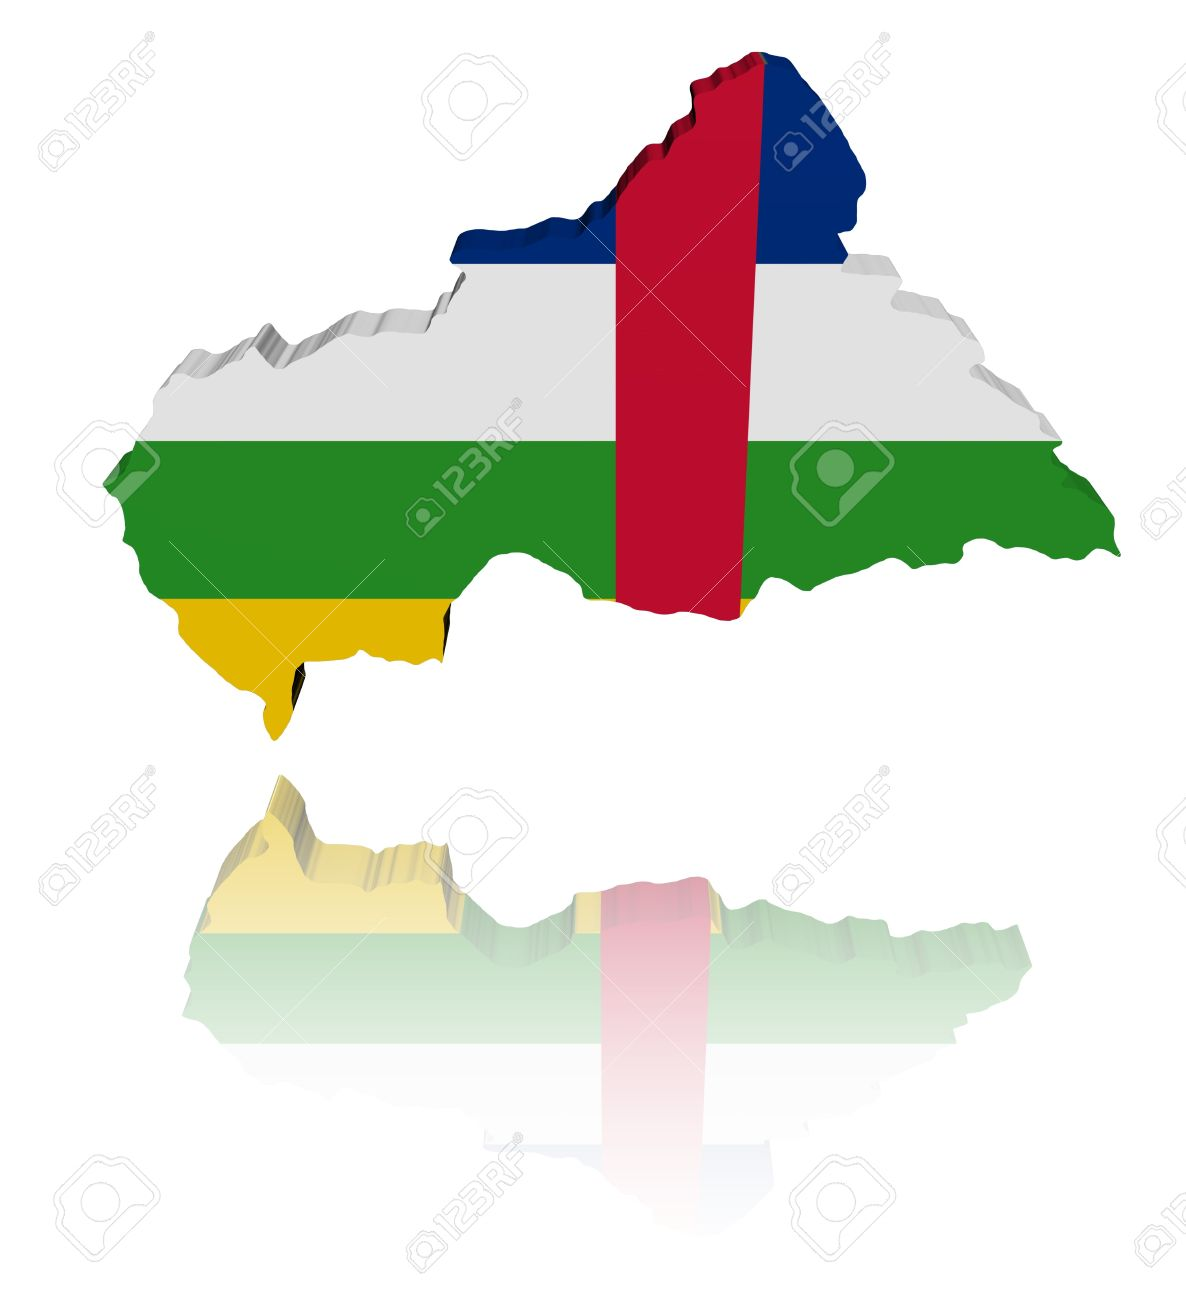 Central African Republic Map Flag Illustration Stock Photo.